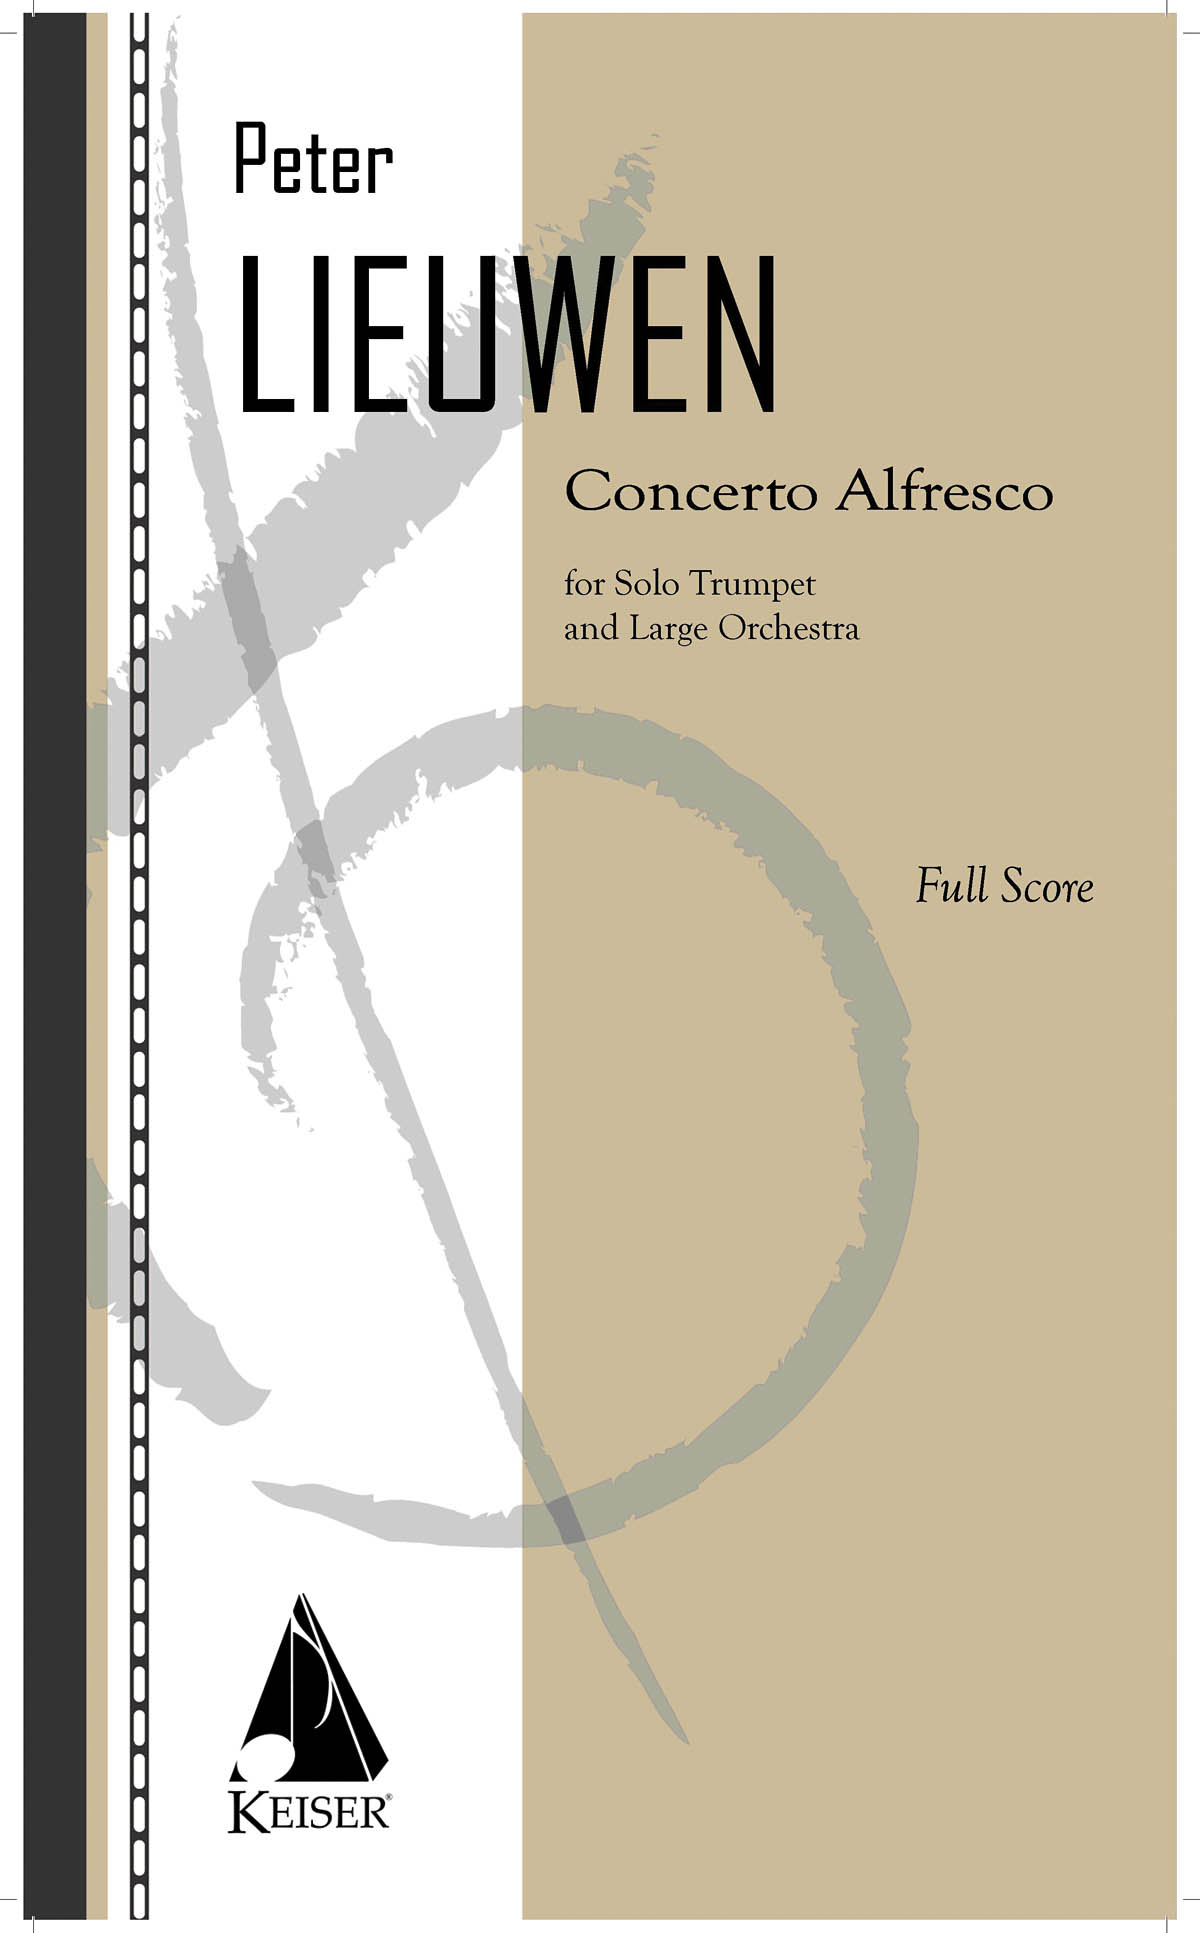 Peter Lieuwen: Concerto Alfresco for Trumpet and Large Orchestra: Orchestra and